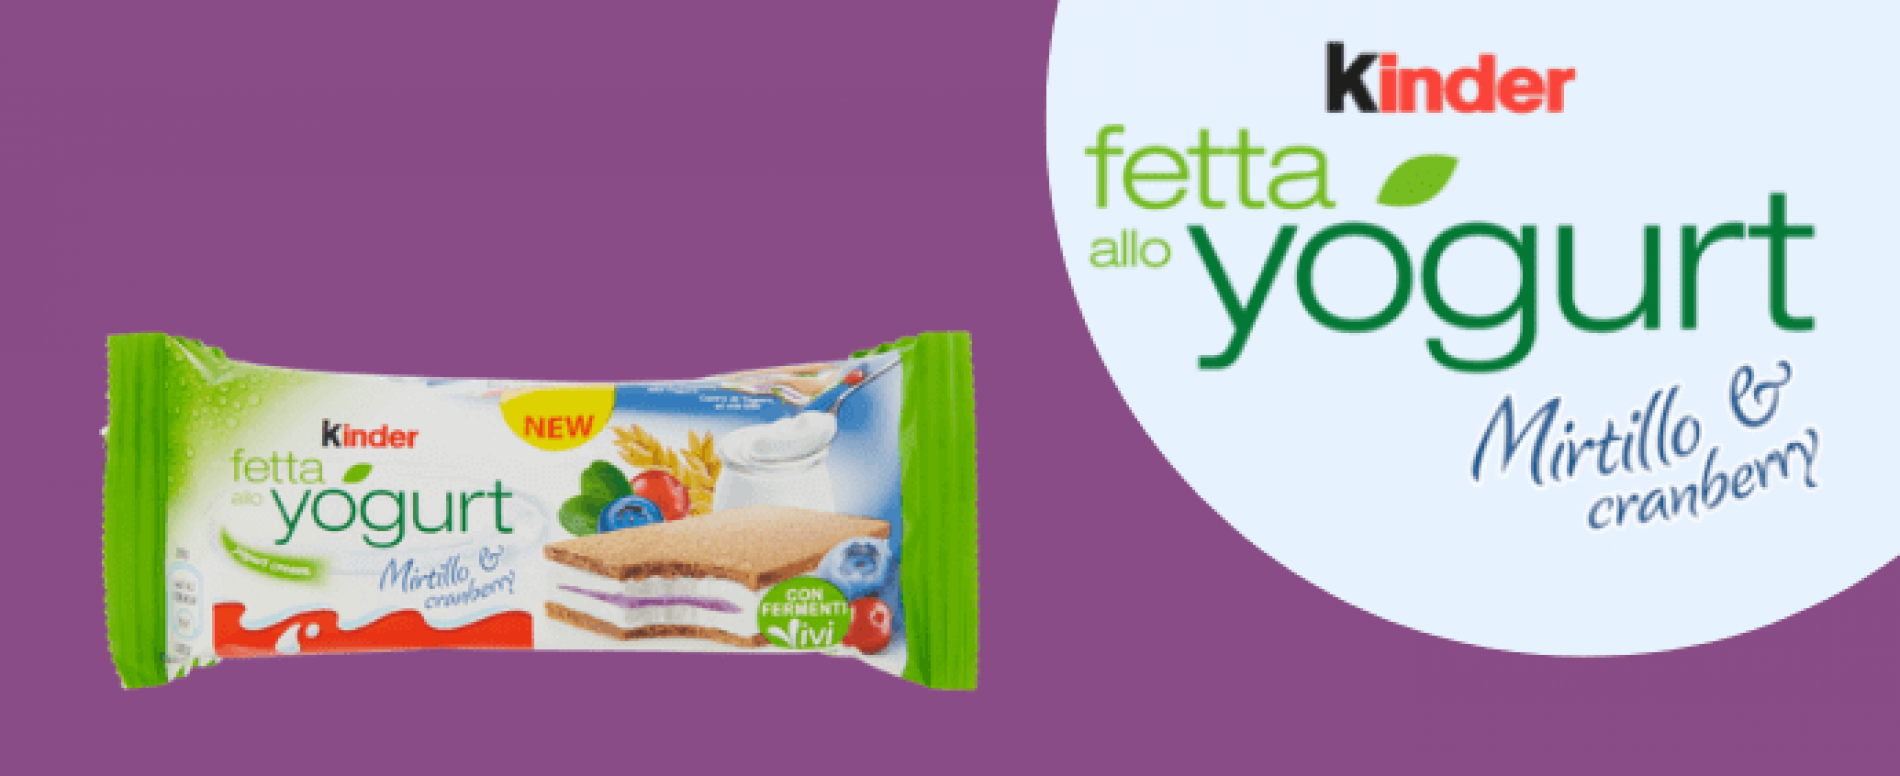 Kinder lancia la nuova Kinder Fetta allo Yogurt Mirtillo & Cranberry